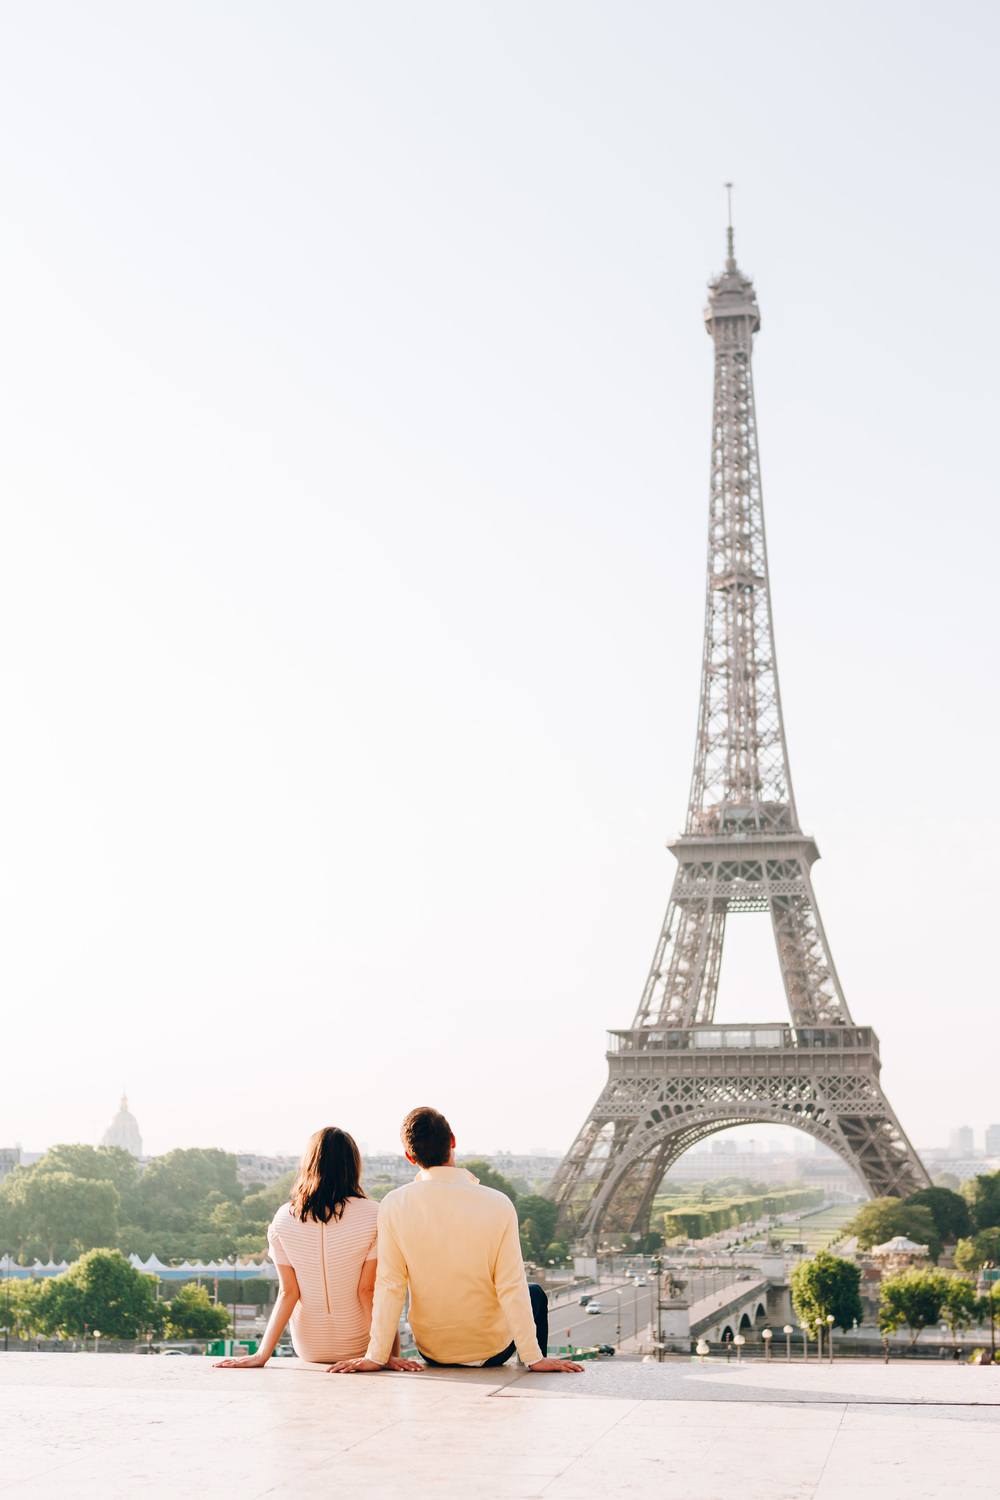 Photographer-In-Paris-Eiffel-Tower-Lovestory-Iheartparisfr.jpg